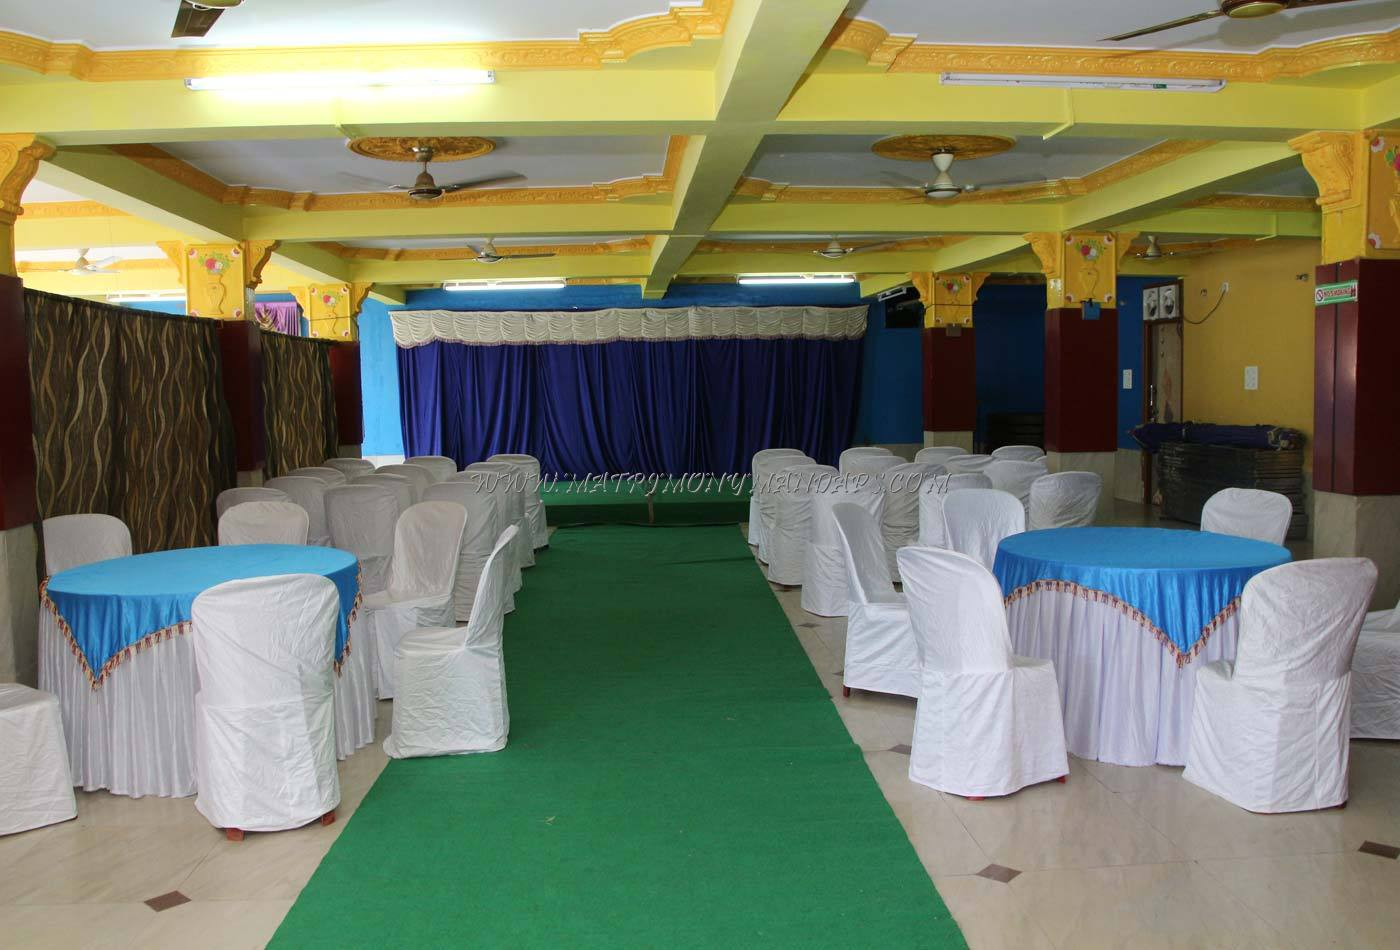 Find the availability of the BSK Party Hall in JP Nagar, Bangalore and avail special offers